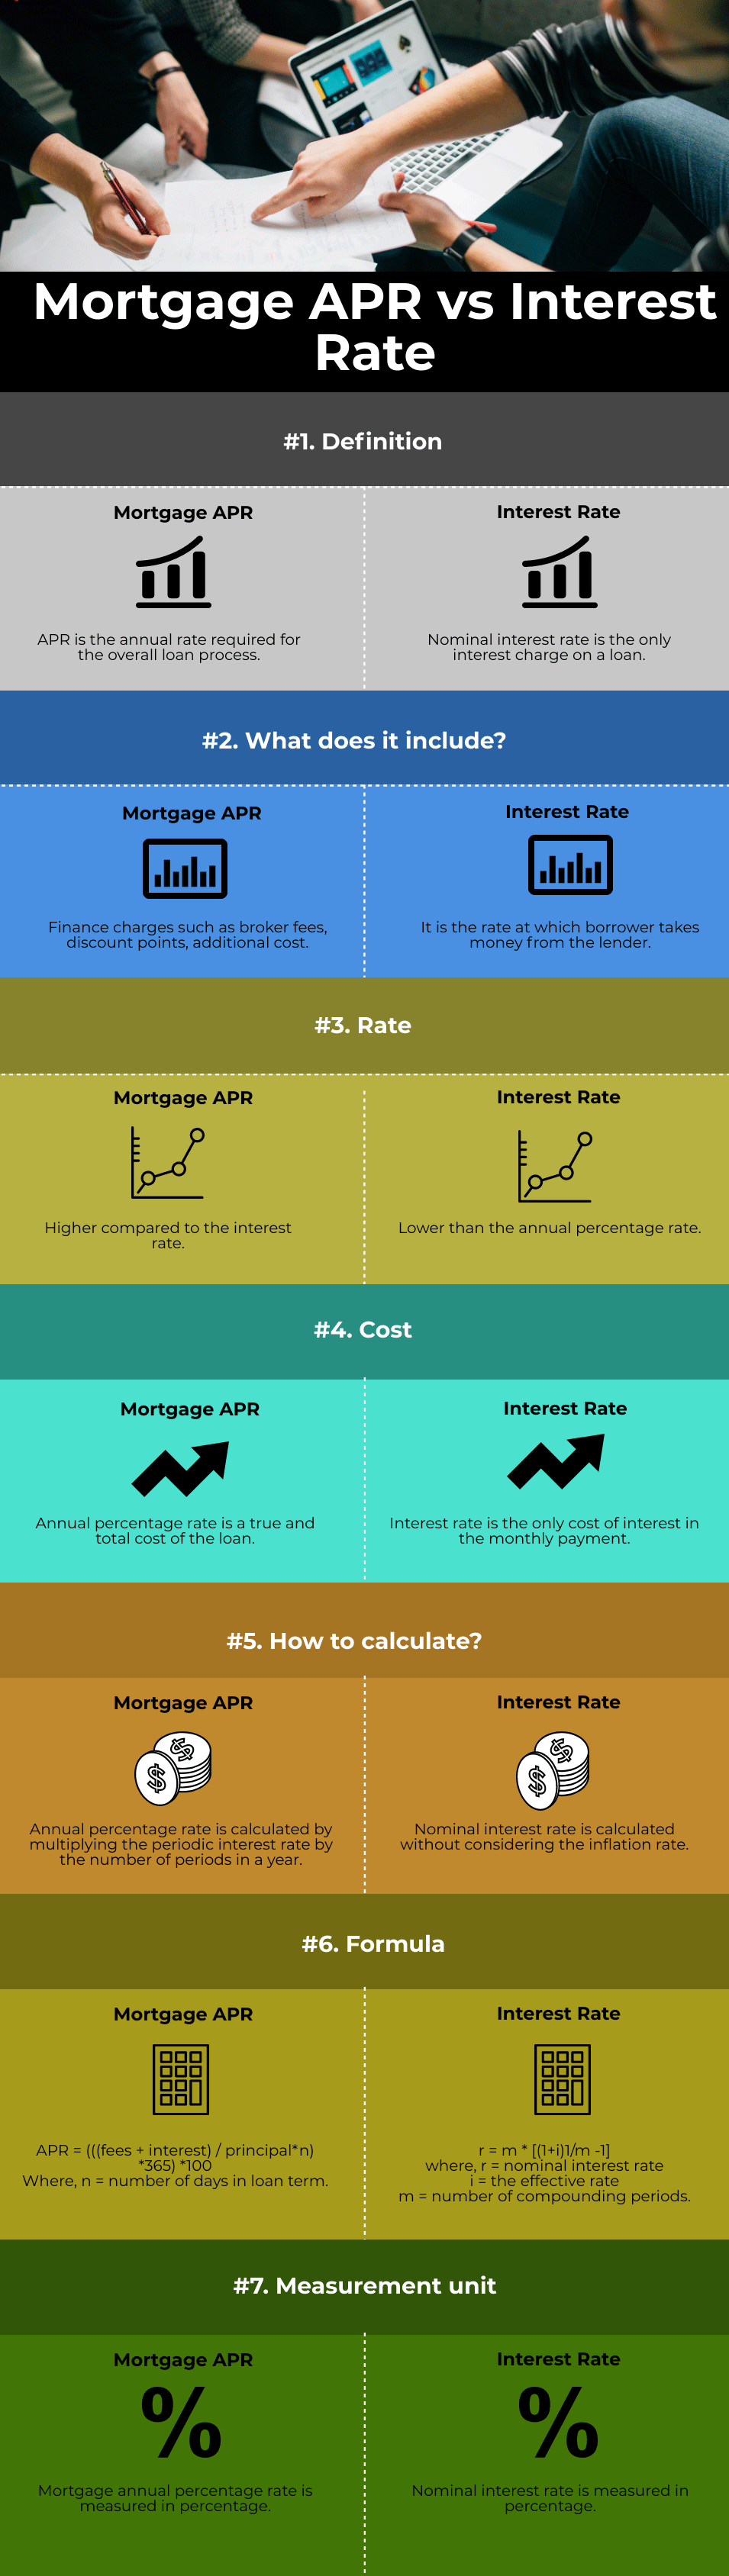 Mortgage APR vs Interest Rate